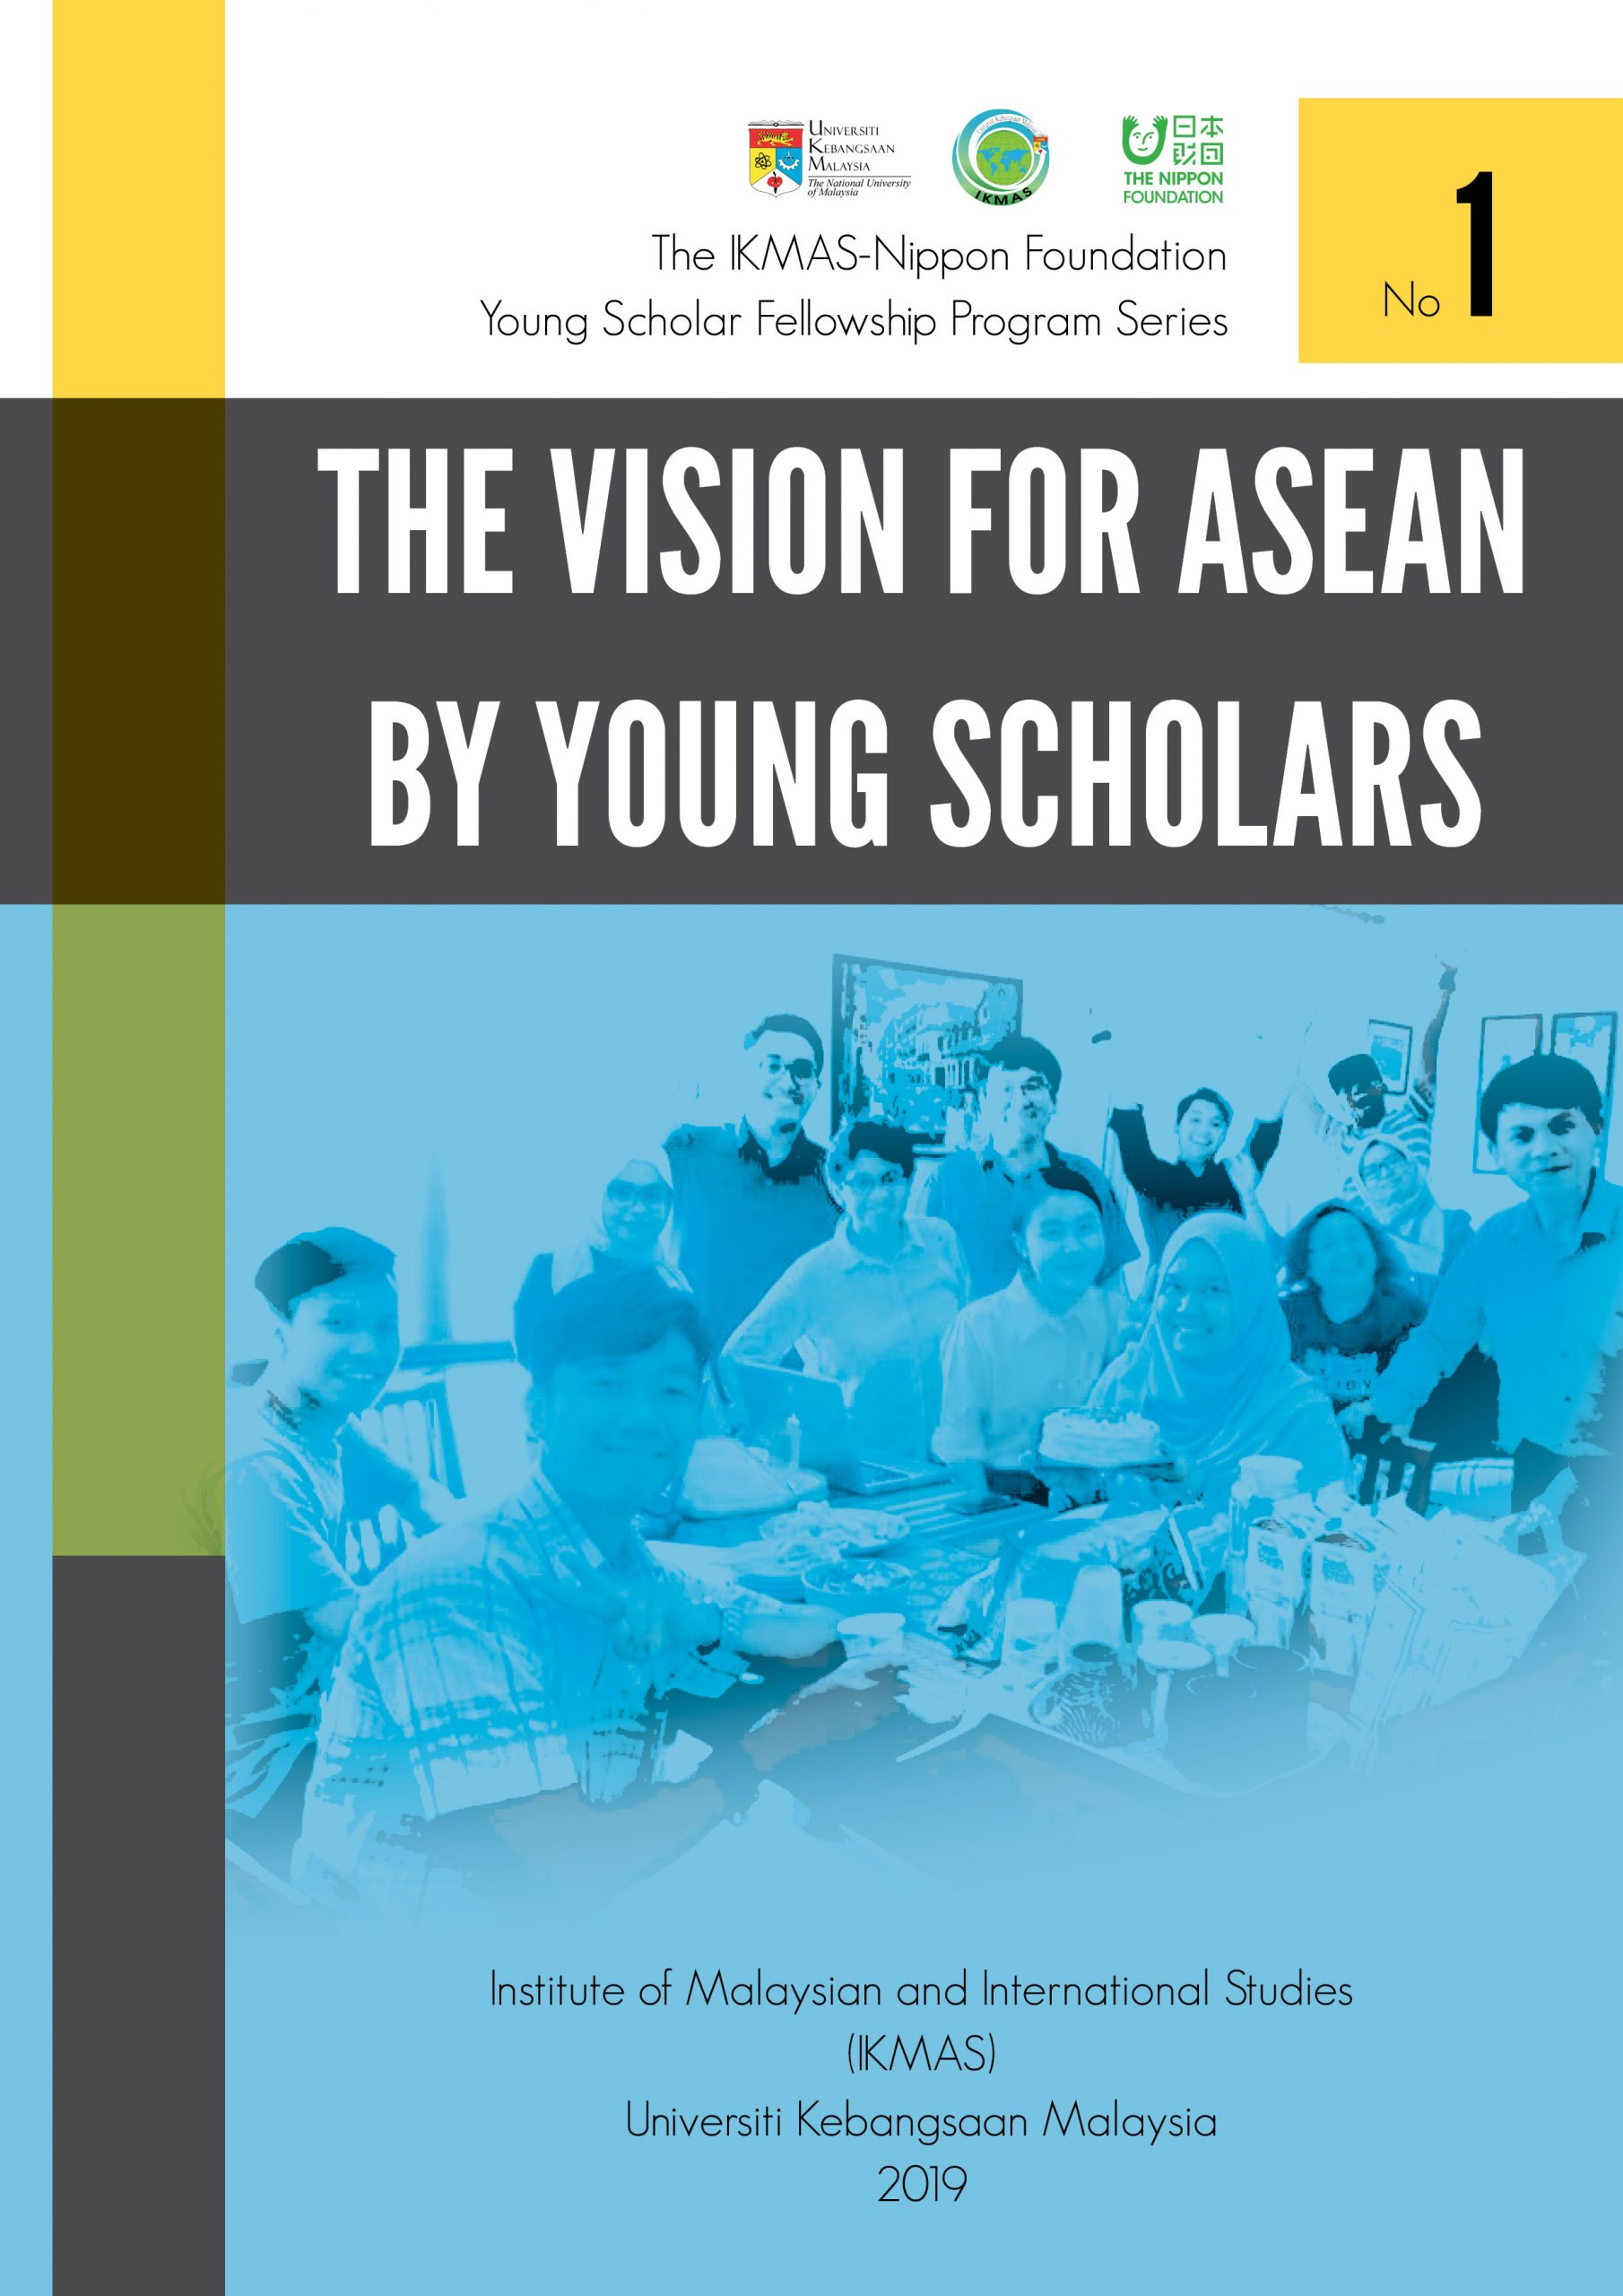 THE VISION FOR ASEAN BY YOUNG SCHOLARS